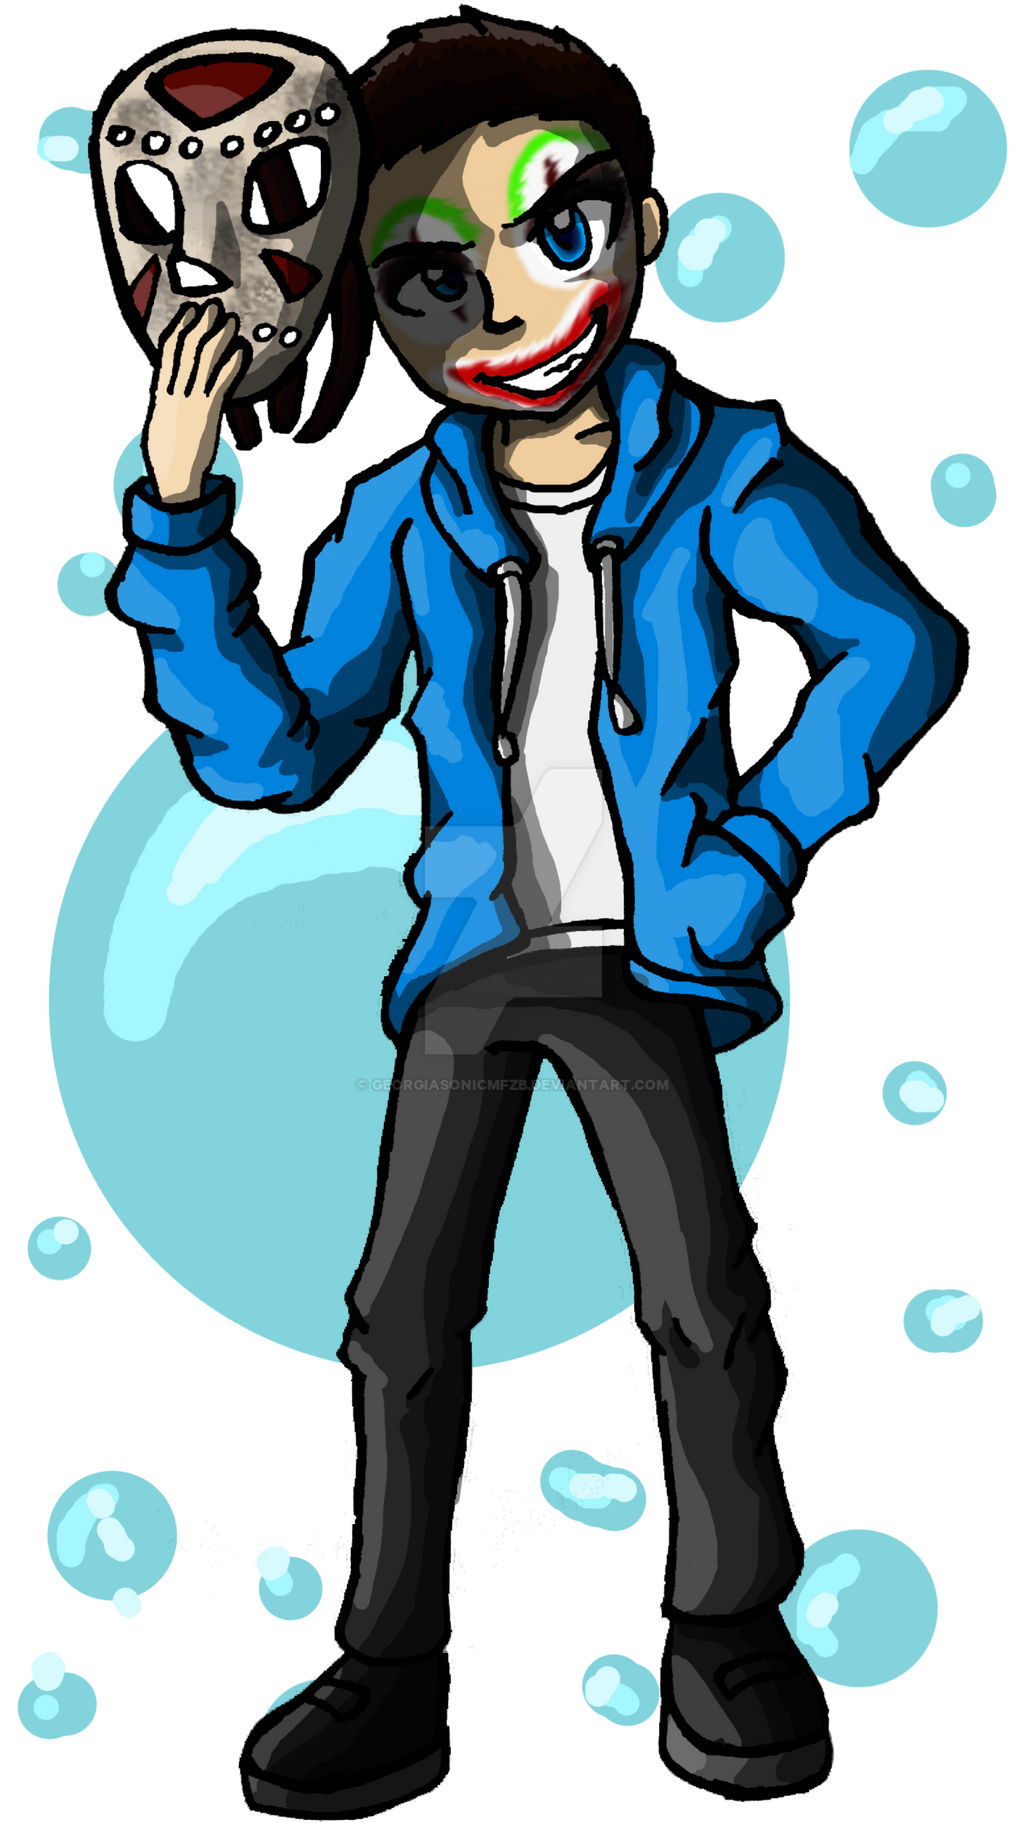 H2O Delirious by GeorgiaSonicMFZB on DeviantArt H2o Delirious Drawings